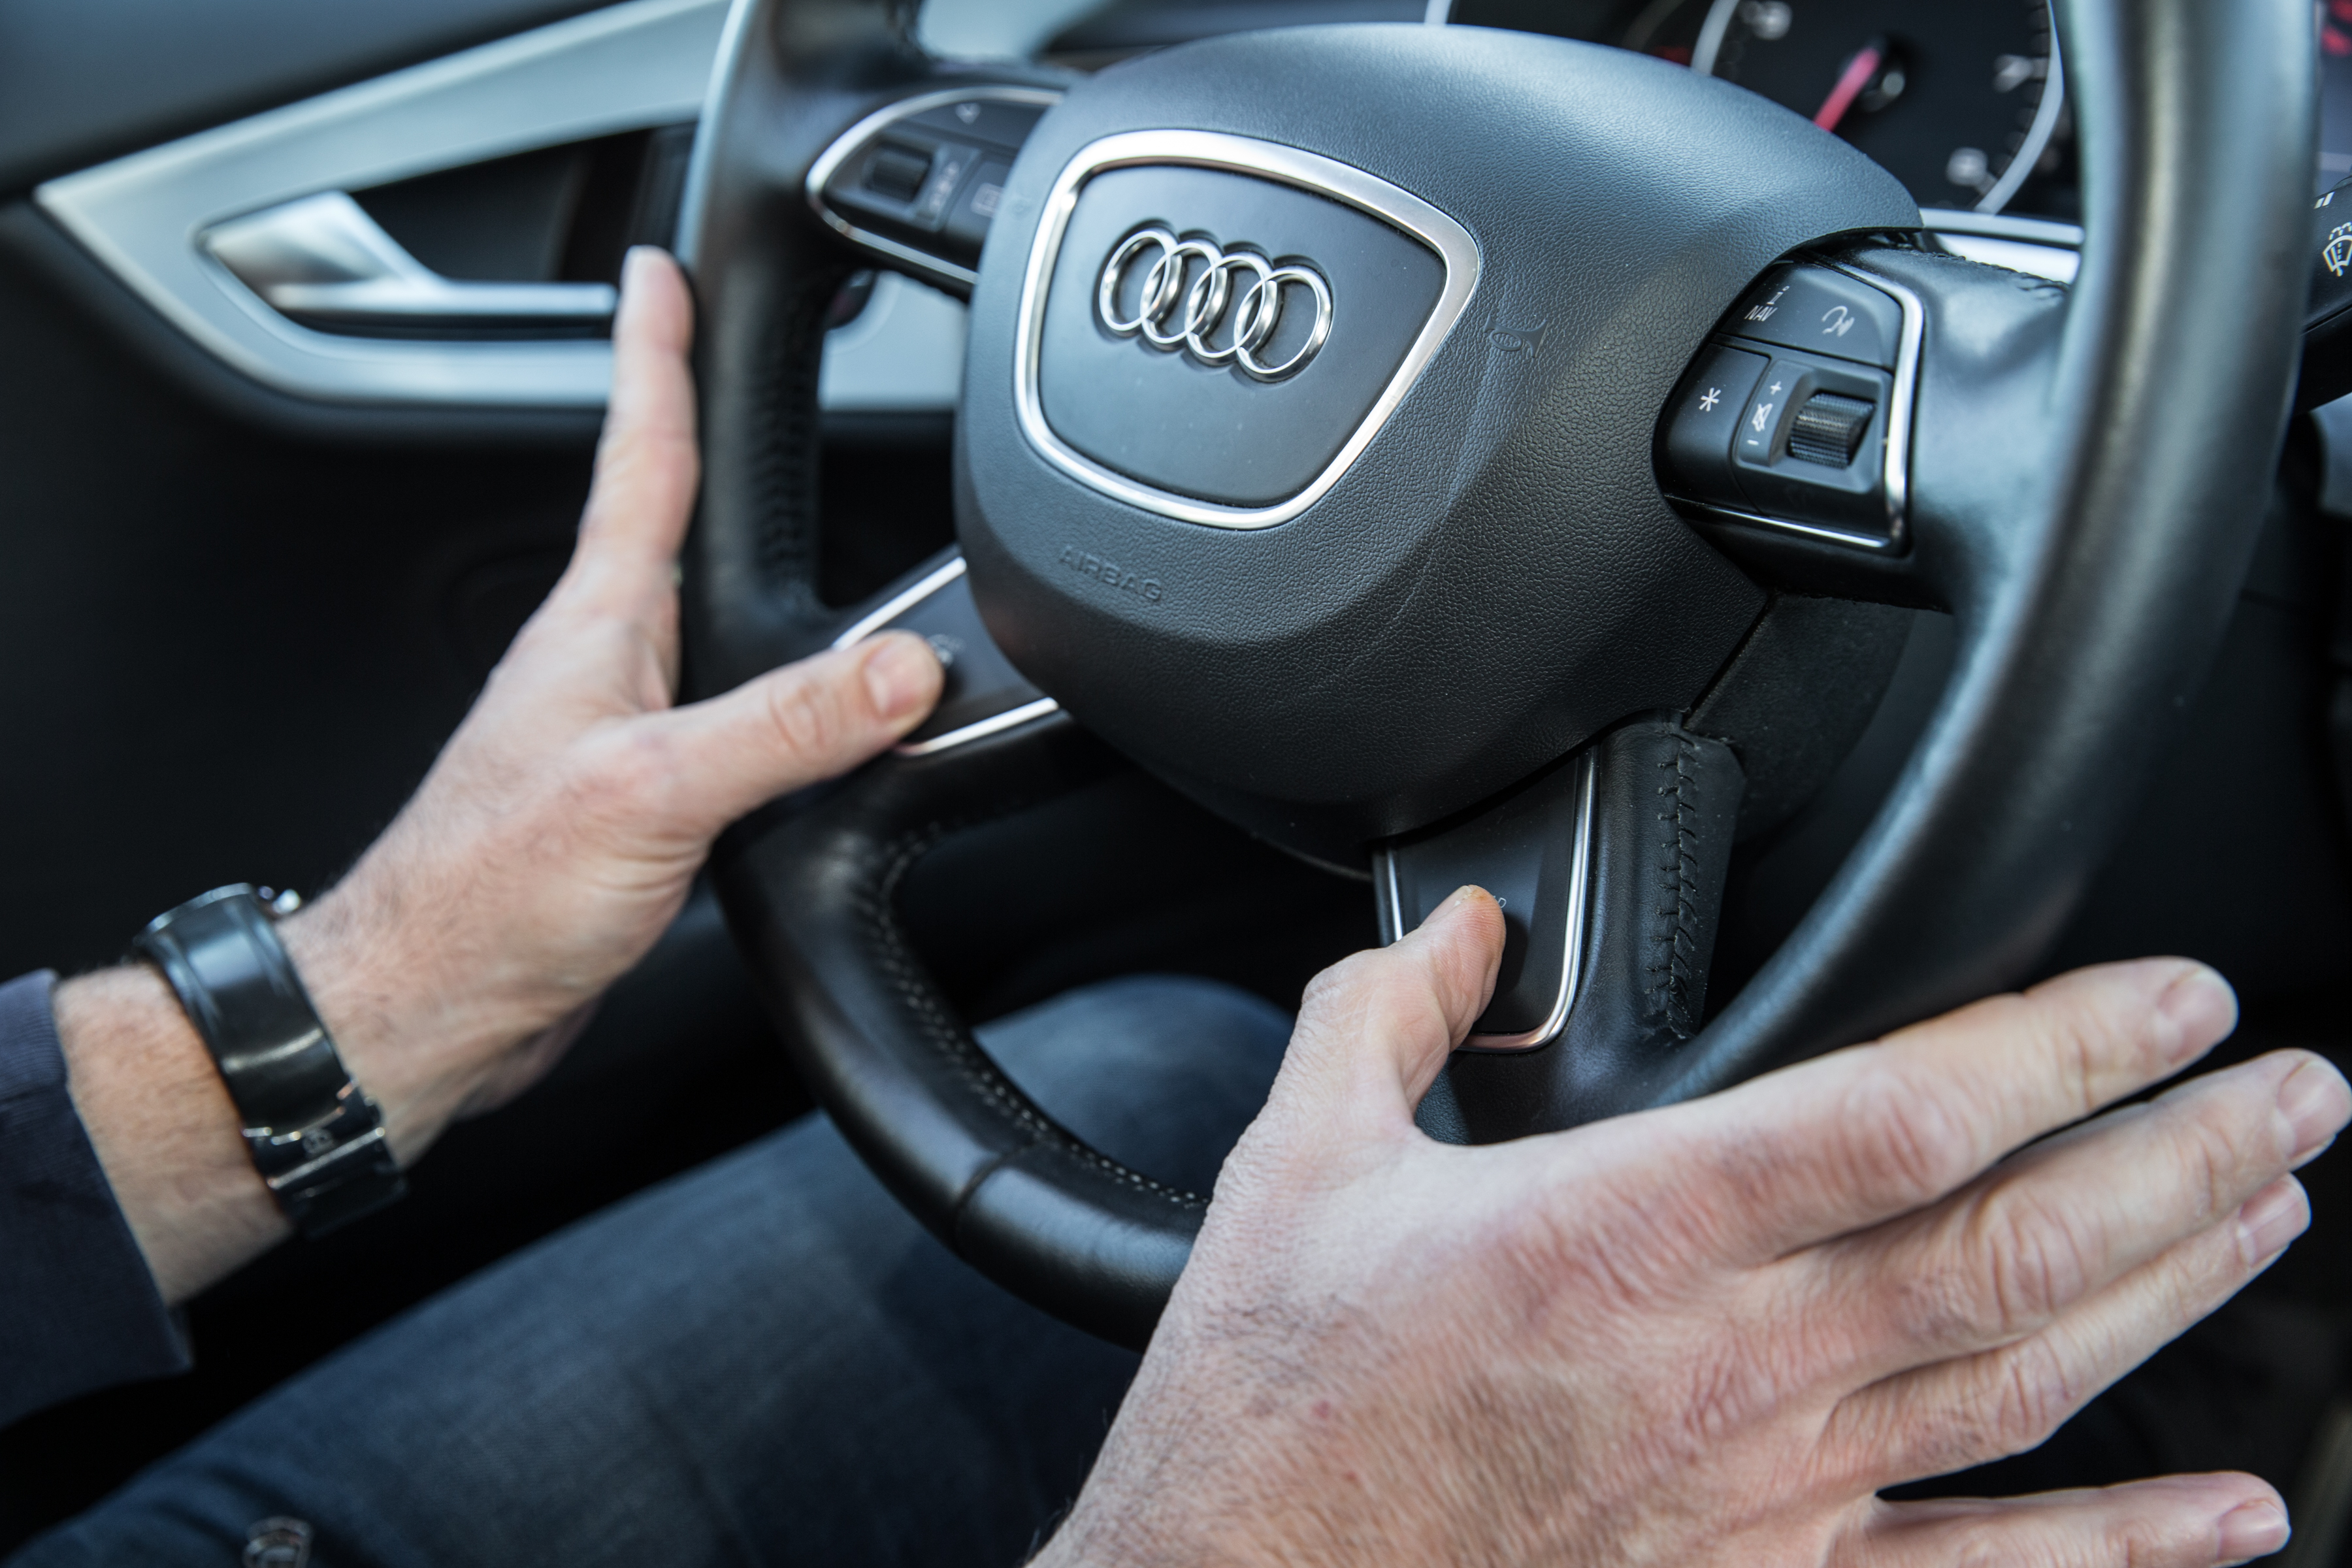 Audi S Self Driving Car Hands Off The Steering Wheel Fortune